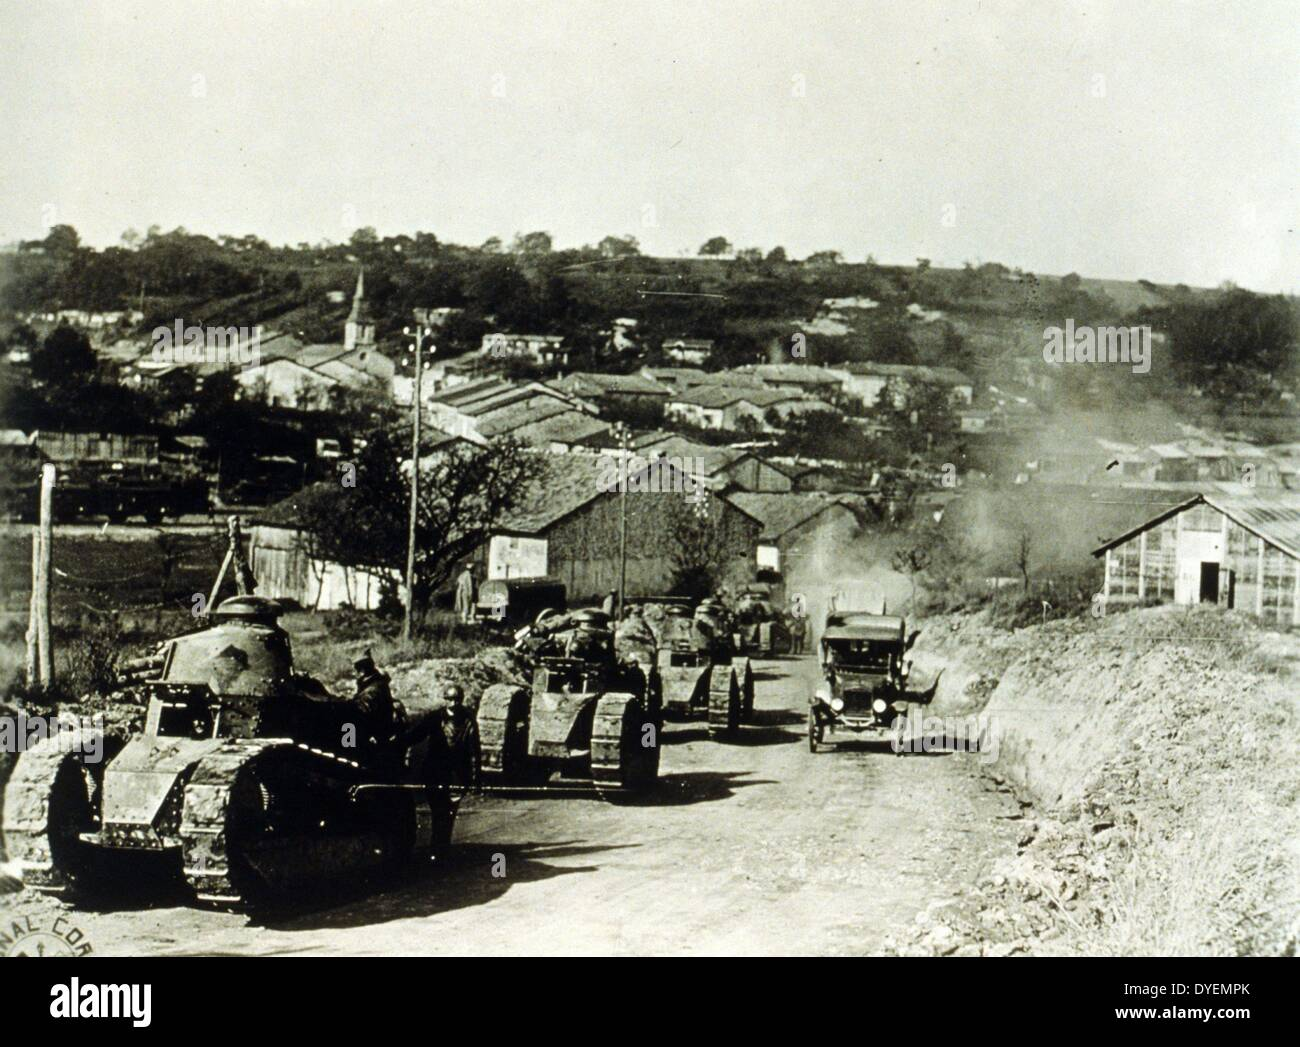 US Army, 337th Co, 13 Bat 505th Reg--French tanks passing thru Rampont, France during World War I, dated 1918. - Stock Image